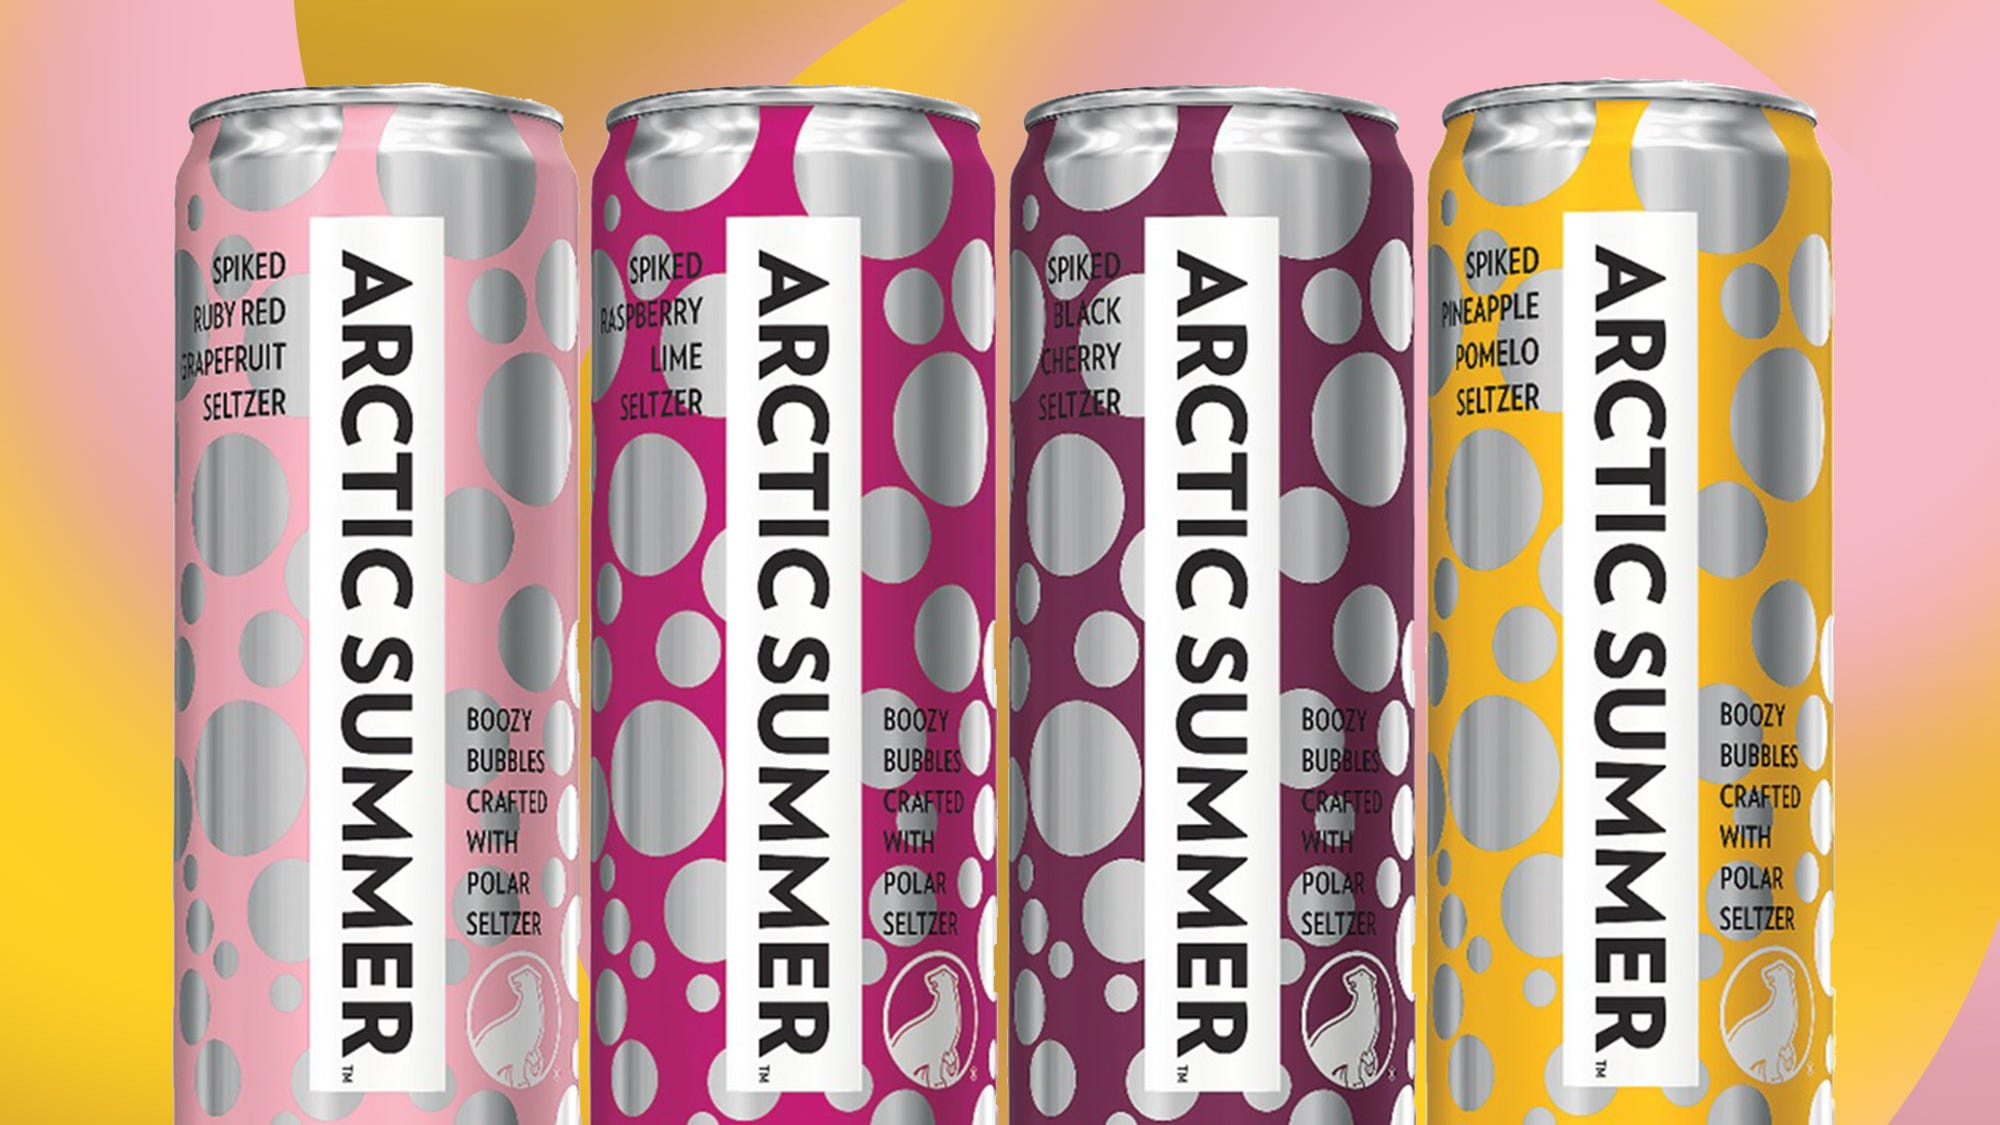 Best Spiked Seltzer Brands 2020 Hard Seltzer To Try